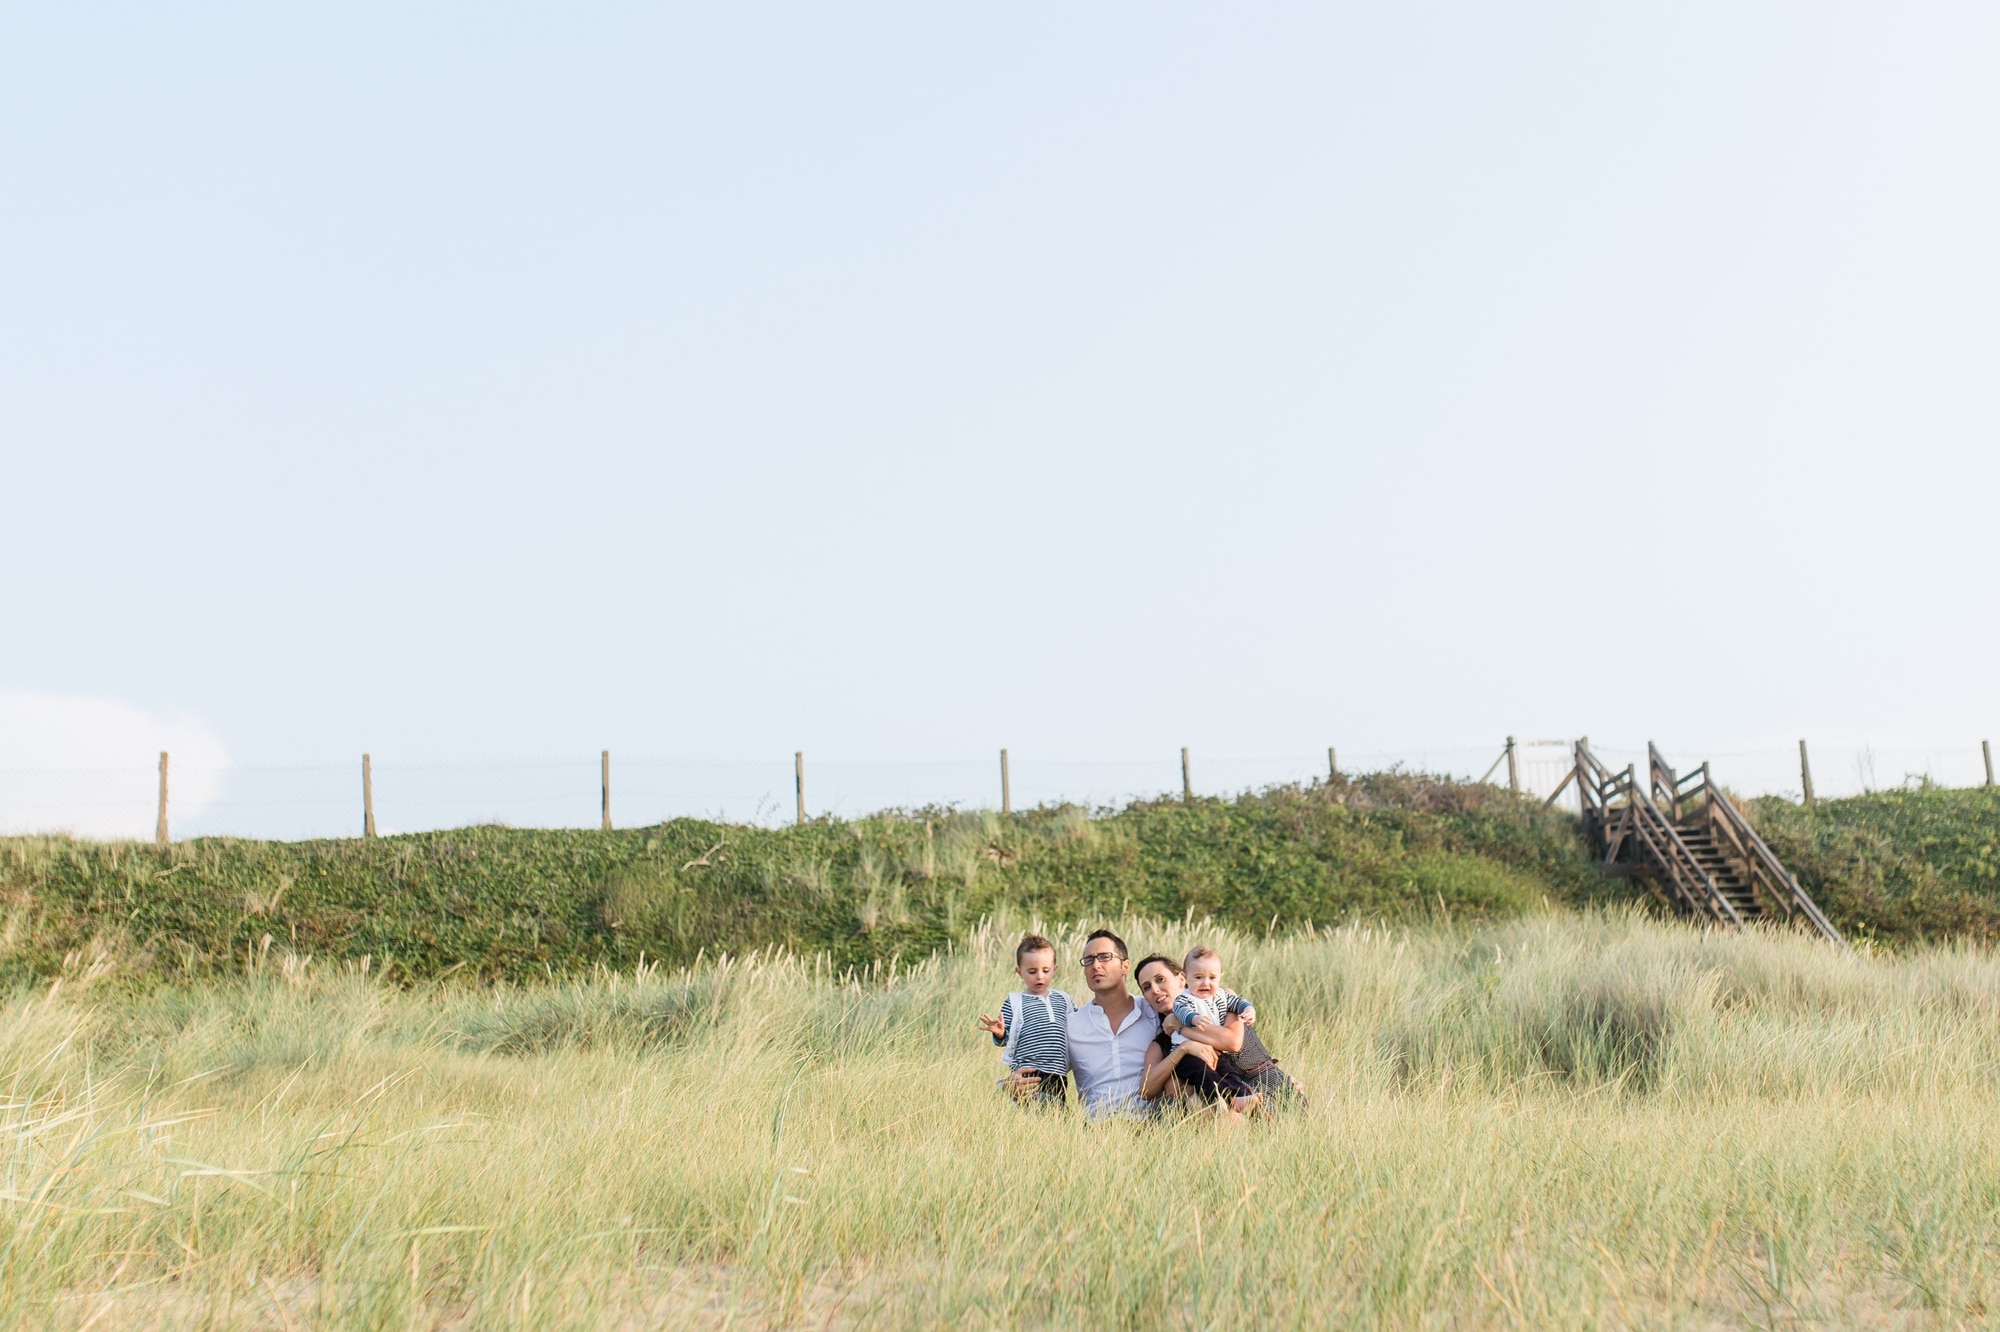 séance famille cabourg basse normandie photographe shooting lifestyle-29